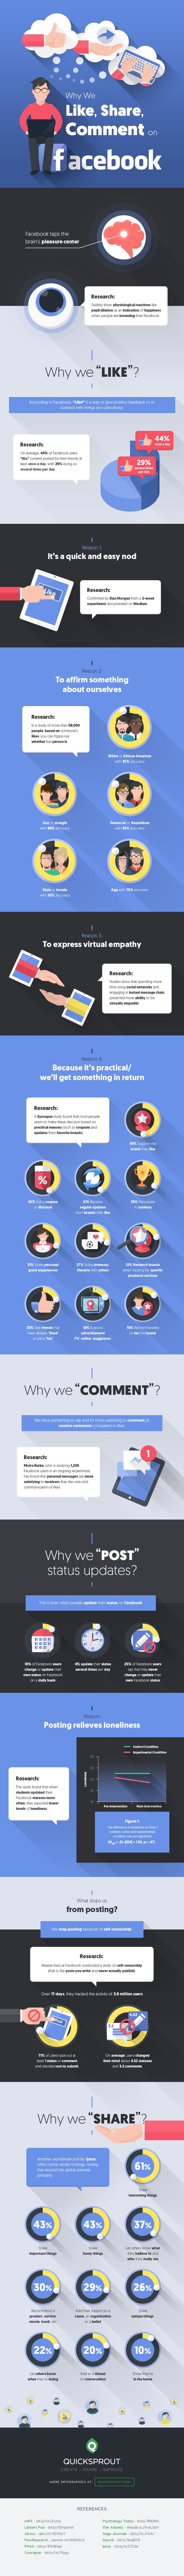 Why We Like, Comment, and Share on Facebook